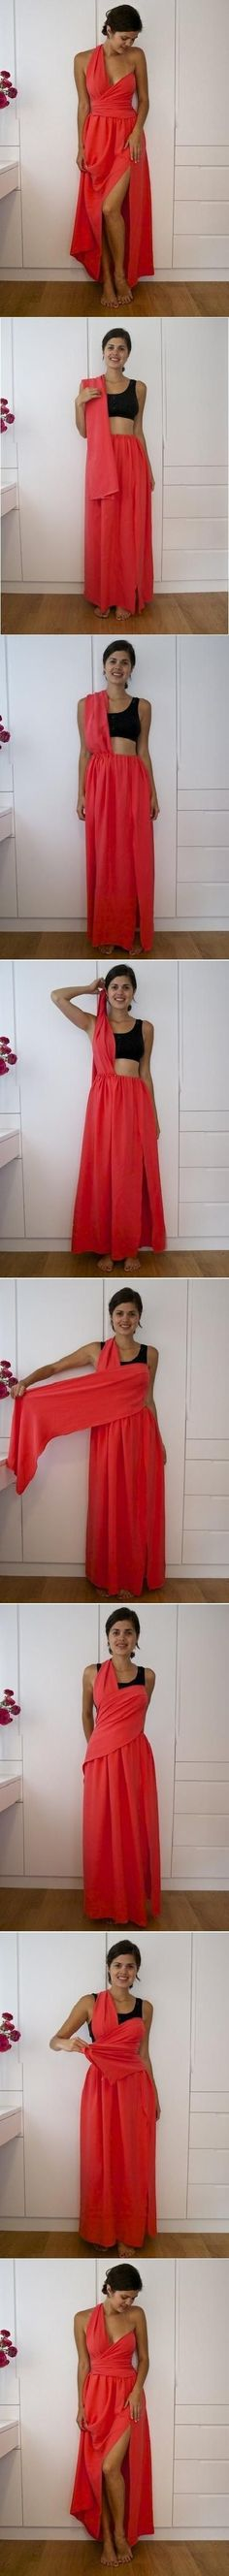 Just grab a long probably 8 feet of fabric and try this.